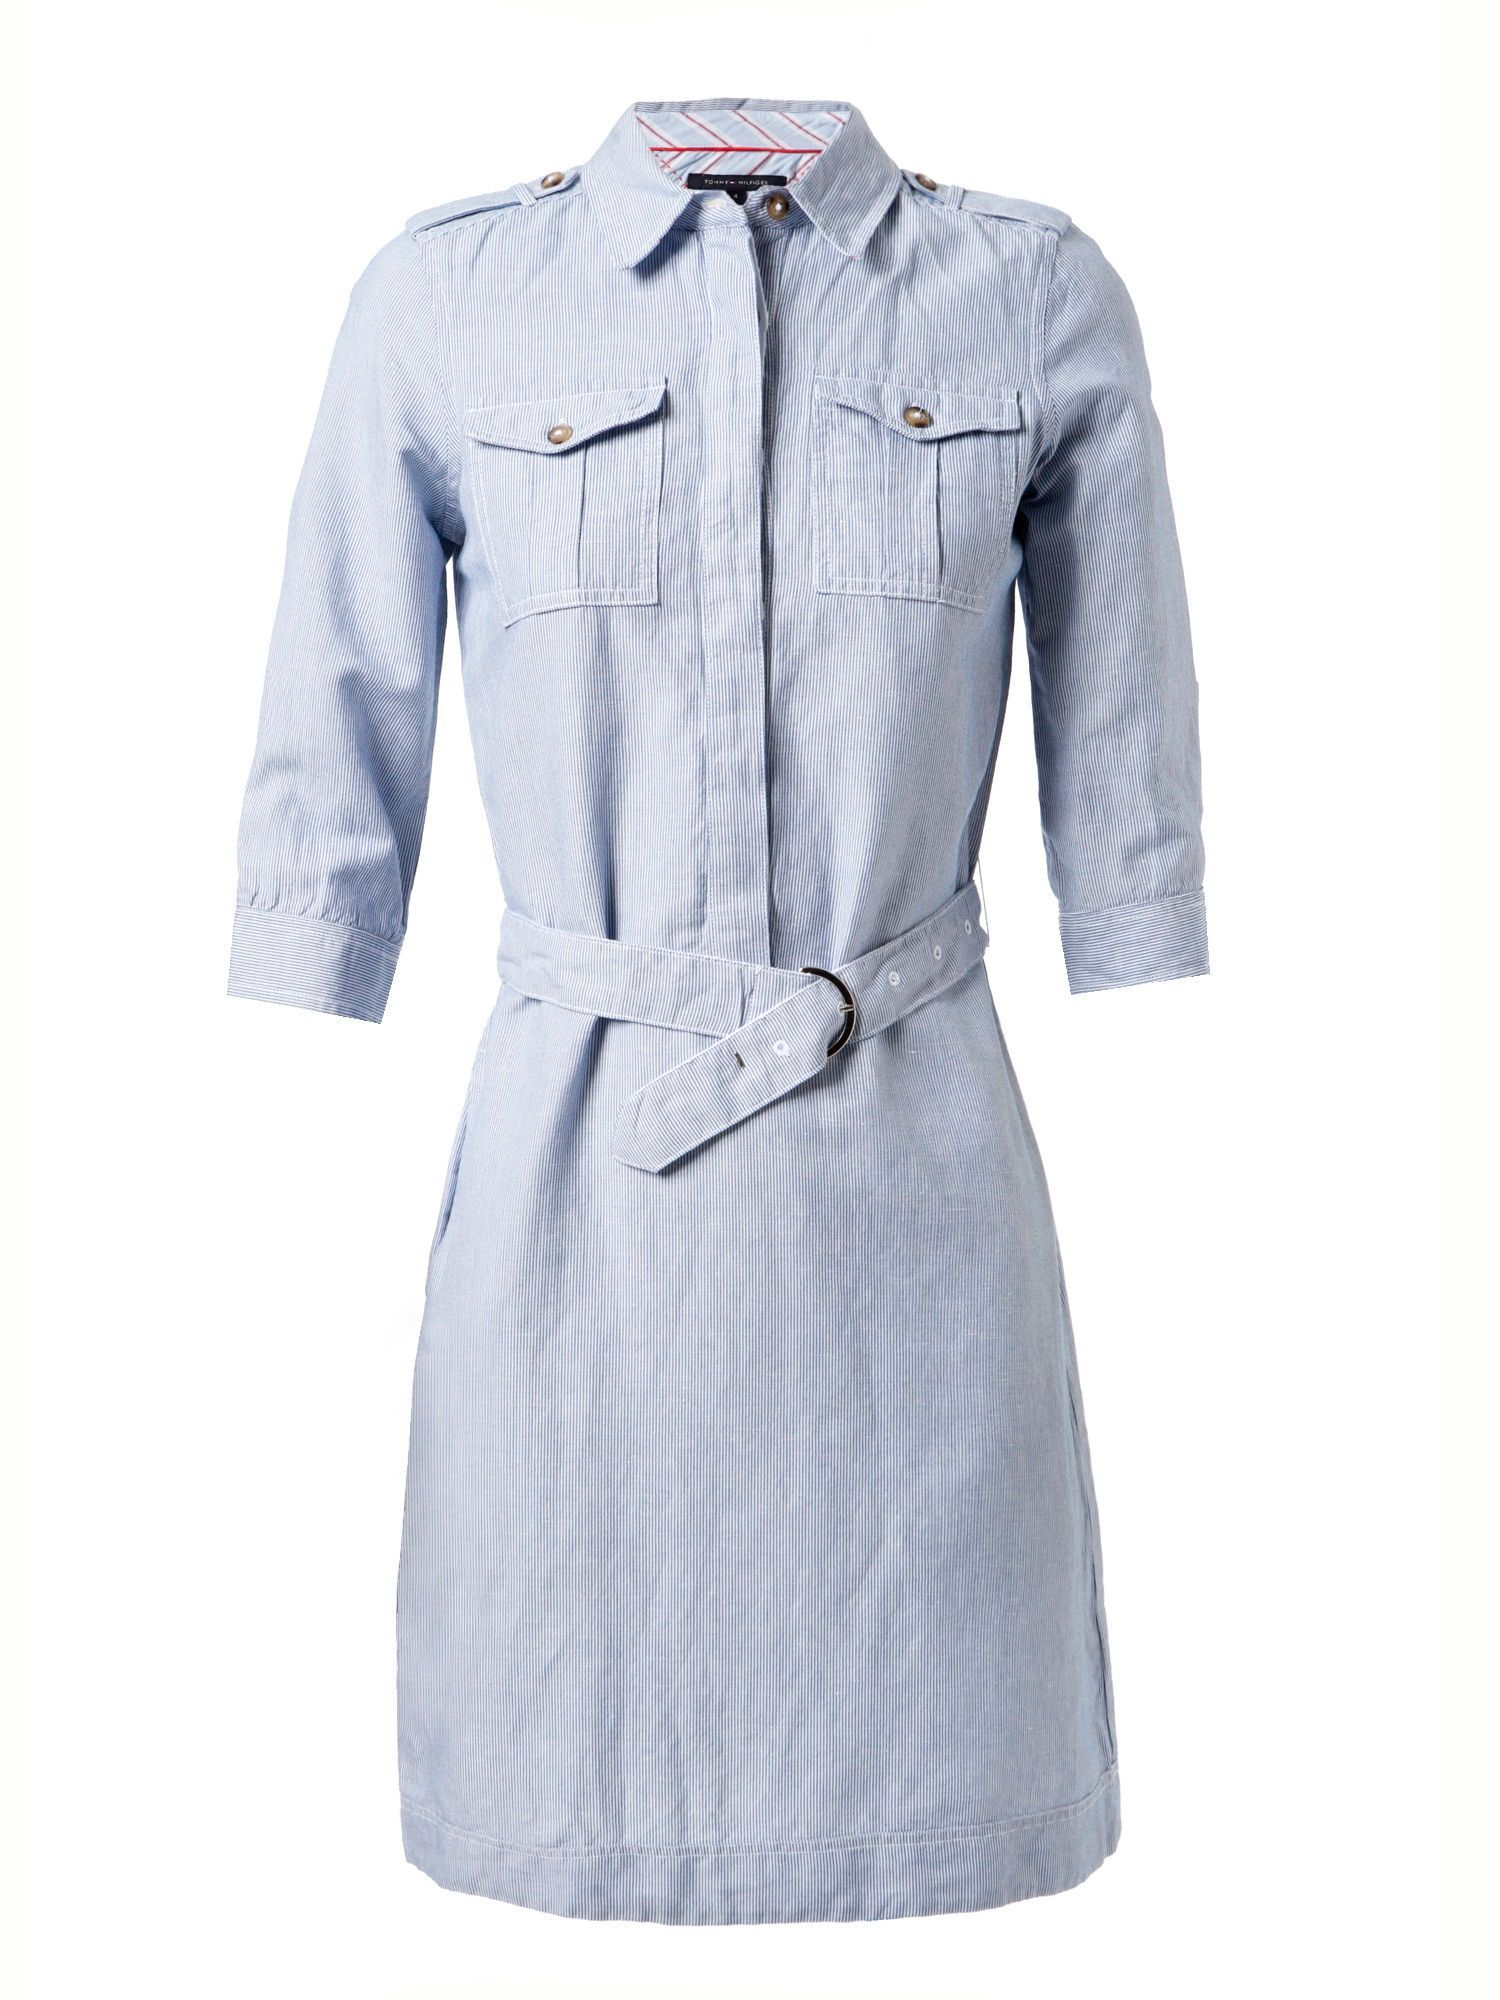 Women&#x27;s Gulcan Stripe Safari 3/4 Sleeve Shirt Dress, Blue - style: shirt; neckline: shirt collar/peter pan/zip with opening; pattern: horizontal stripes, striped; shoulder detail: obvious epaulette; bust detail: added detail/embellishment at bust; waist detail: fitted waist, belted waist/tie at waist/drawstring; predominant colour: pale blue; occasions: casual, work; length: just above the knee; fit: body skimming; fibres: cotton - mix; material texture: jersey; trends: pastels; sleeve length: 3/4 length; sleeve style: standard; pattern type: fabric; pattern size: standard; texture group: jersey - stretchy/drapey